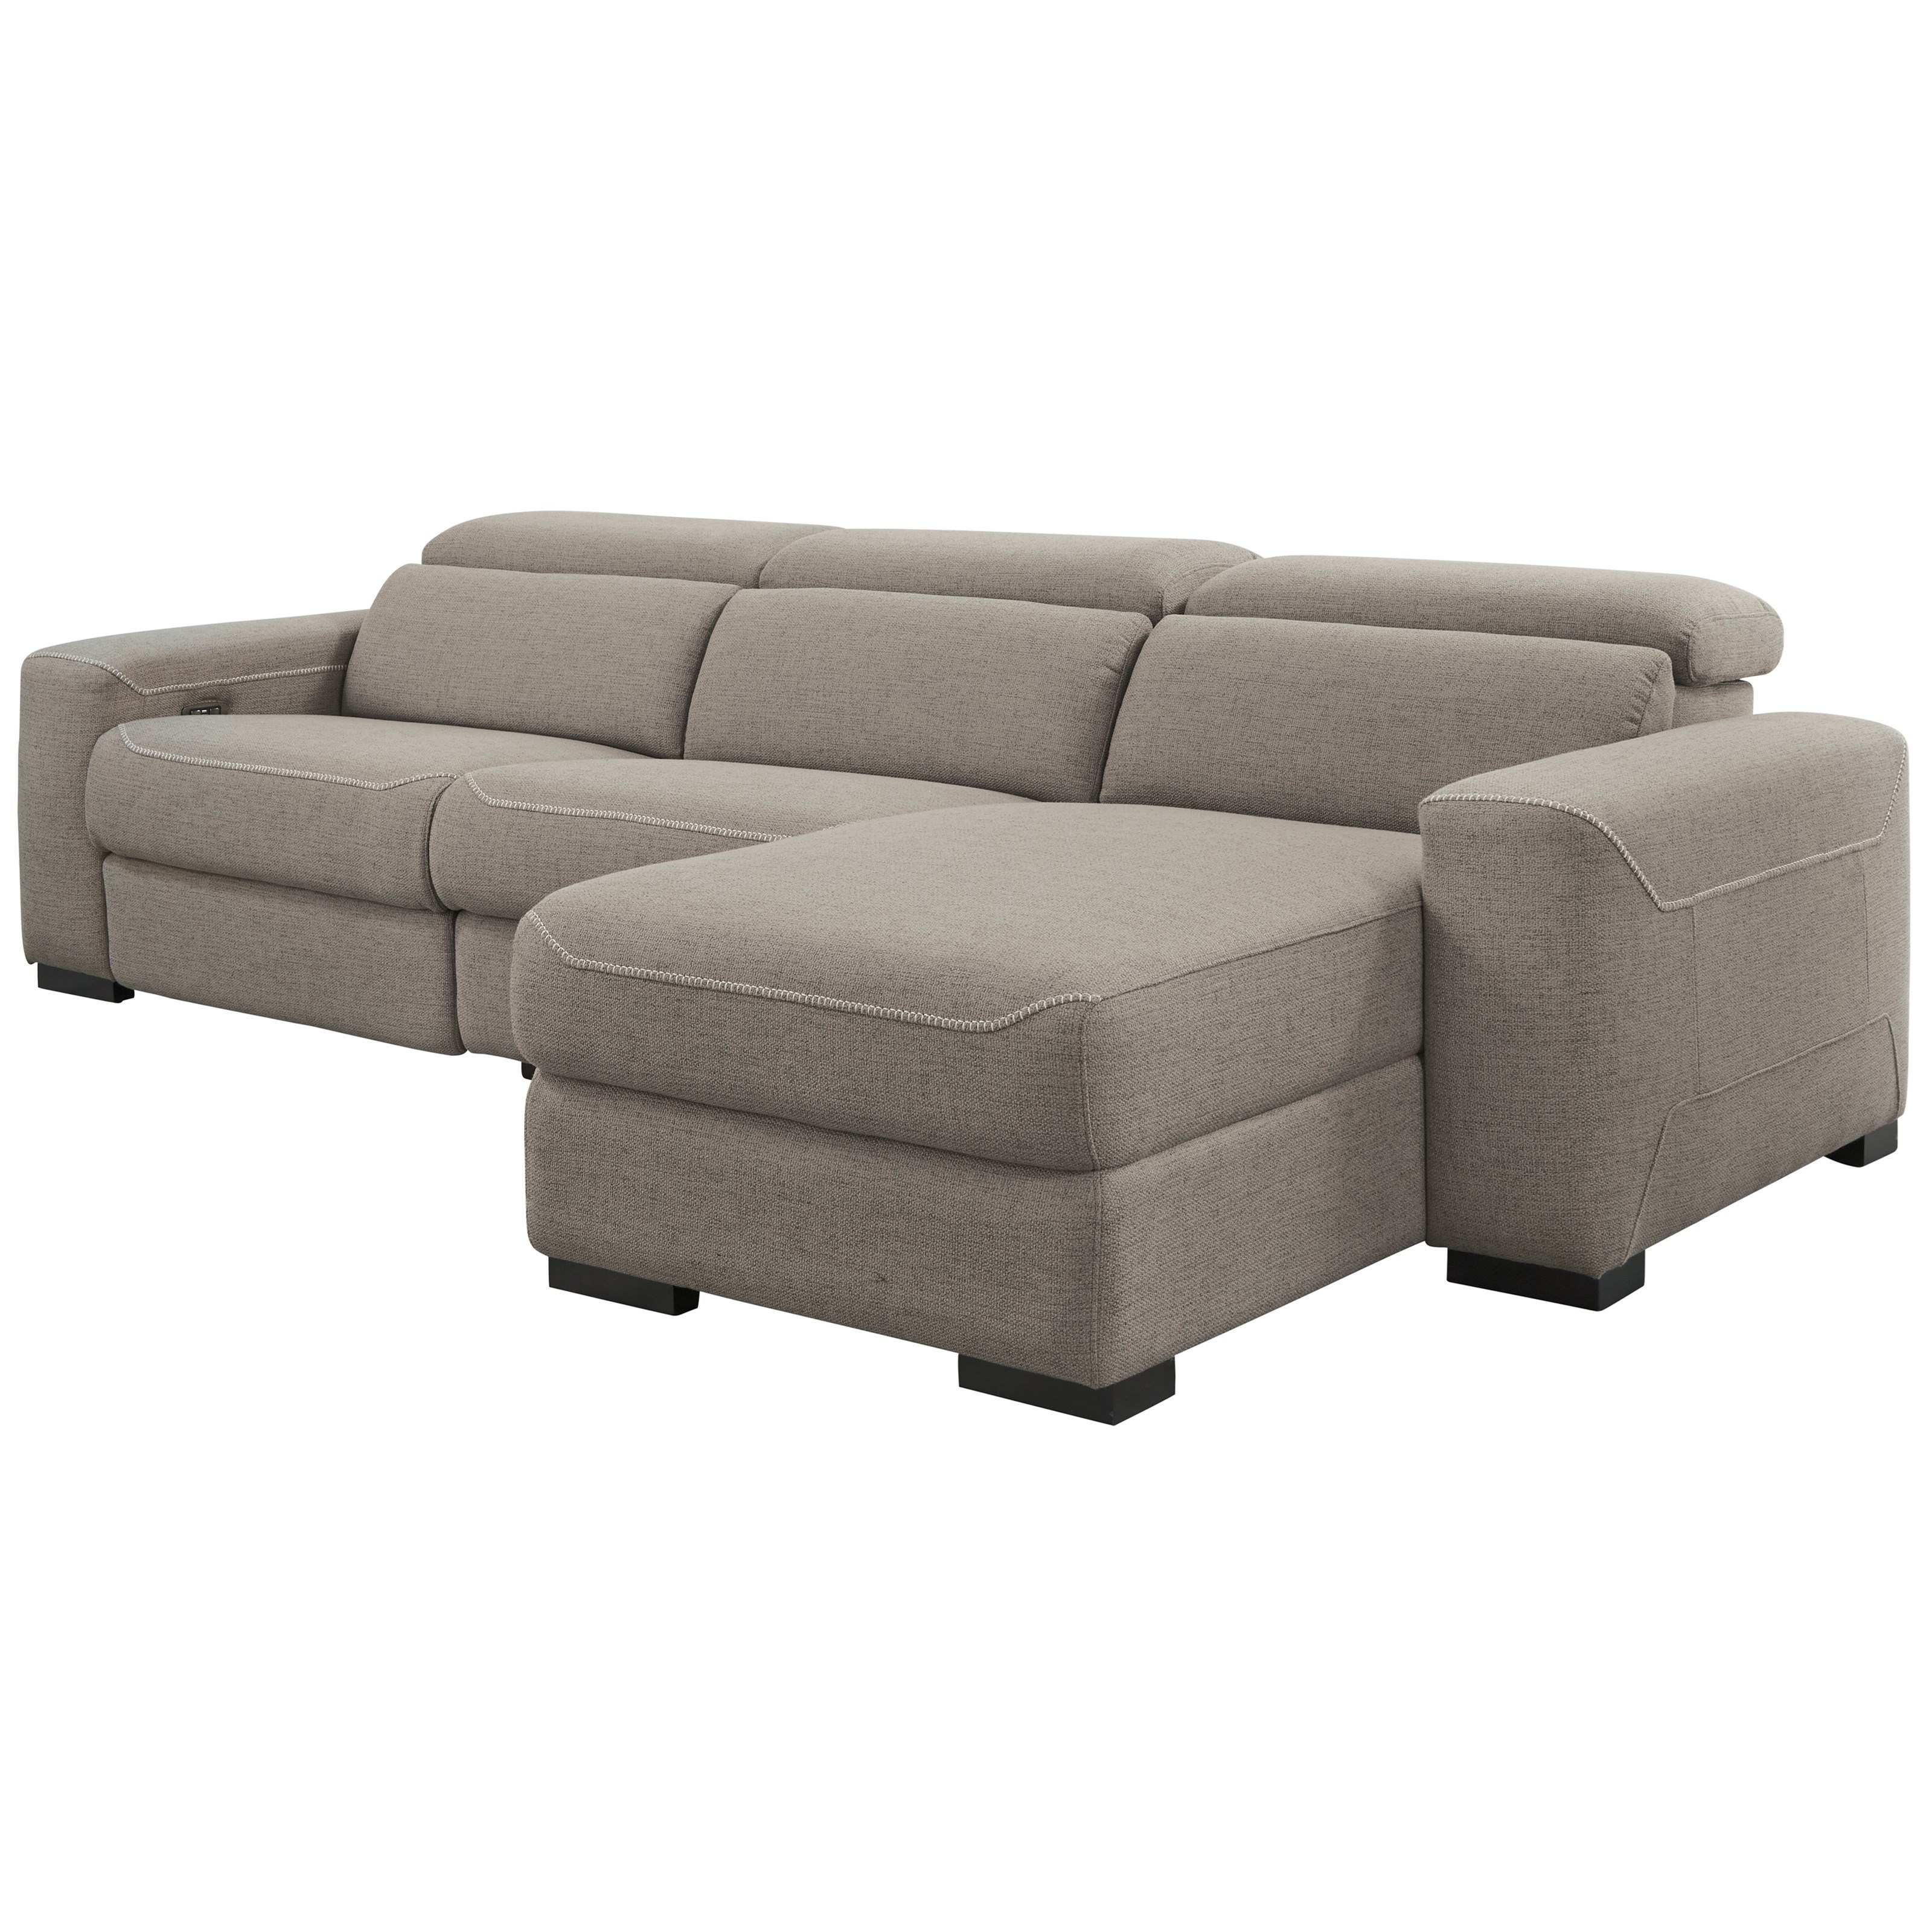 Mabton Power Reclining Sectional by Signature Design by Ashley at Red Knot